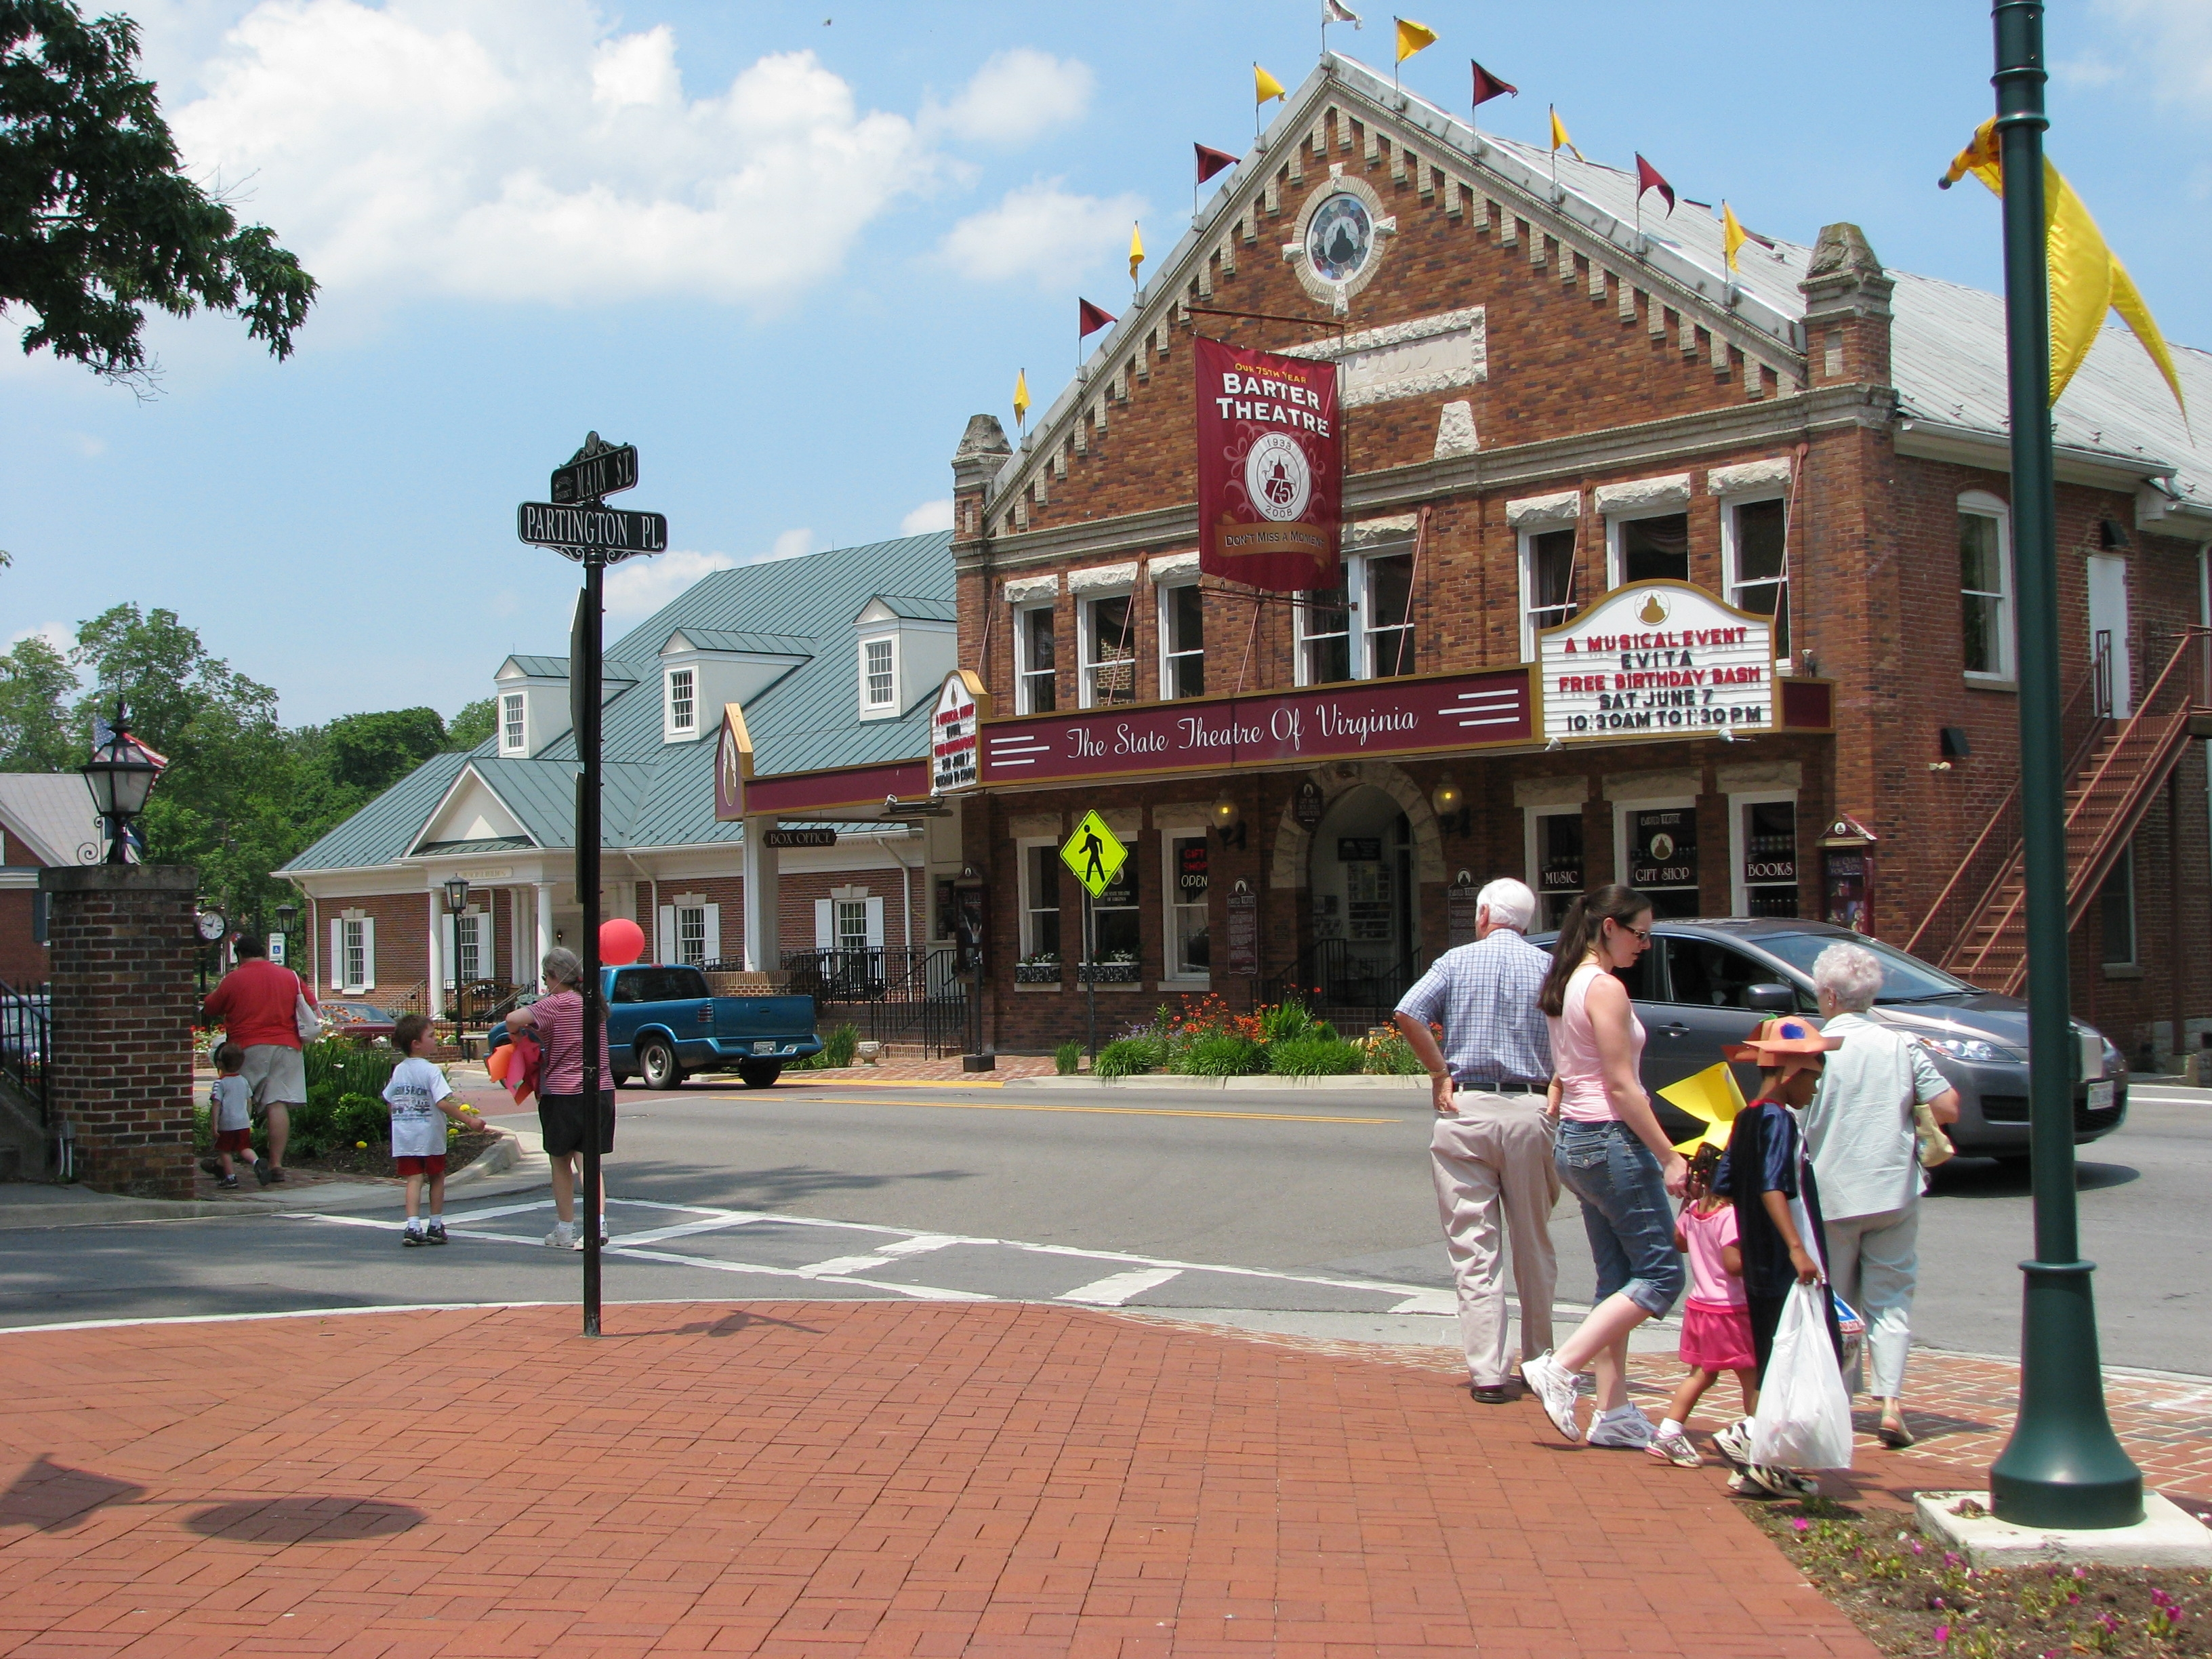 The Barter Theater is one of Abingdon's key cultural and historic assets.